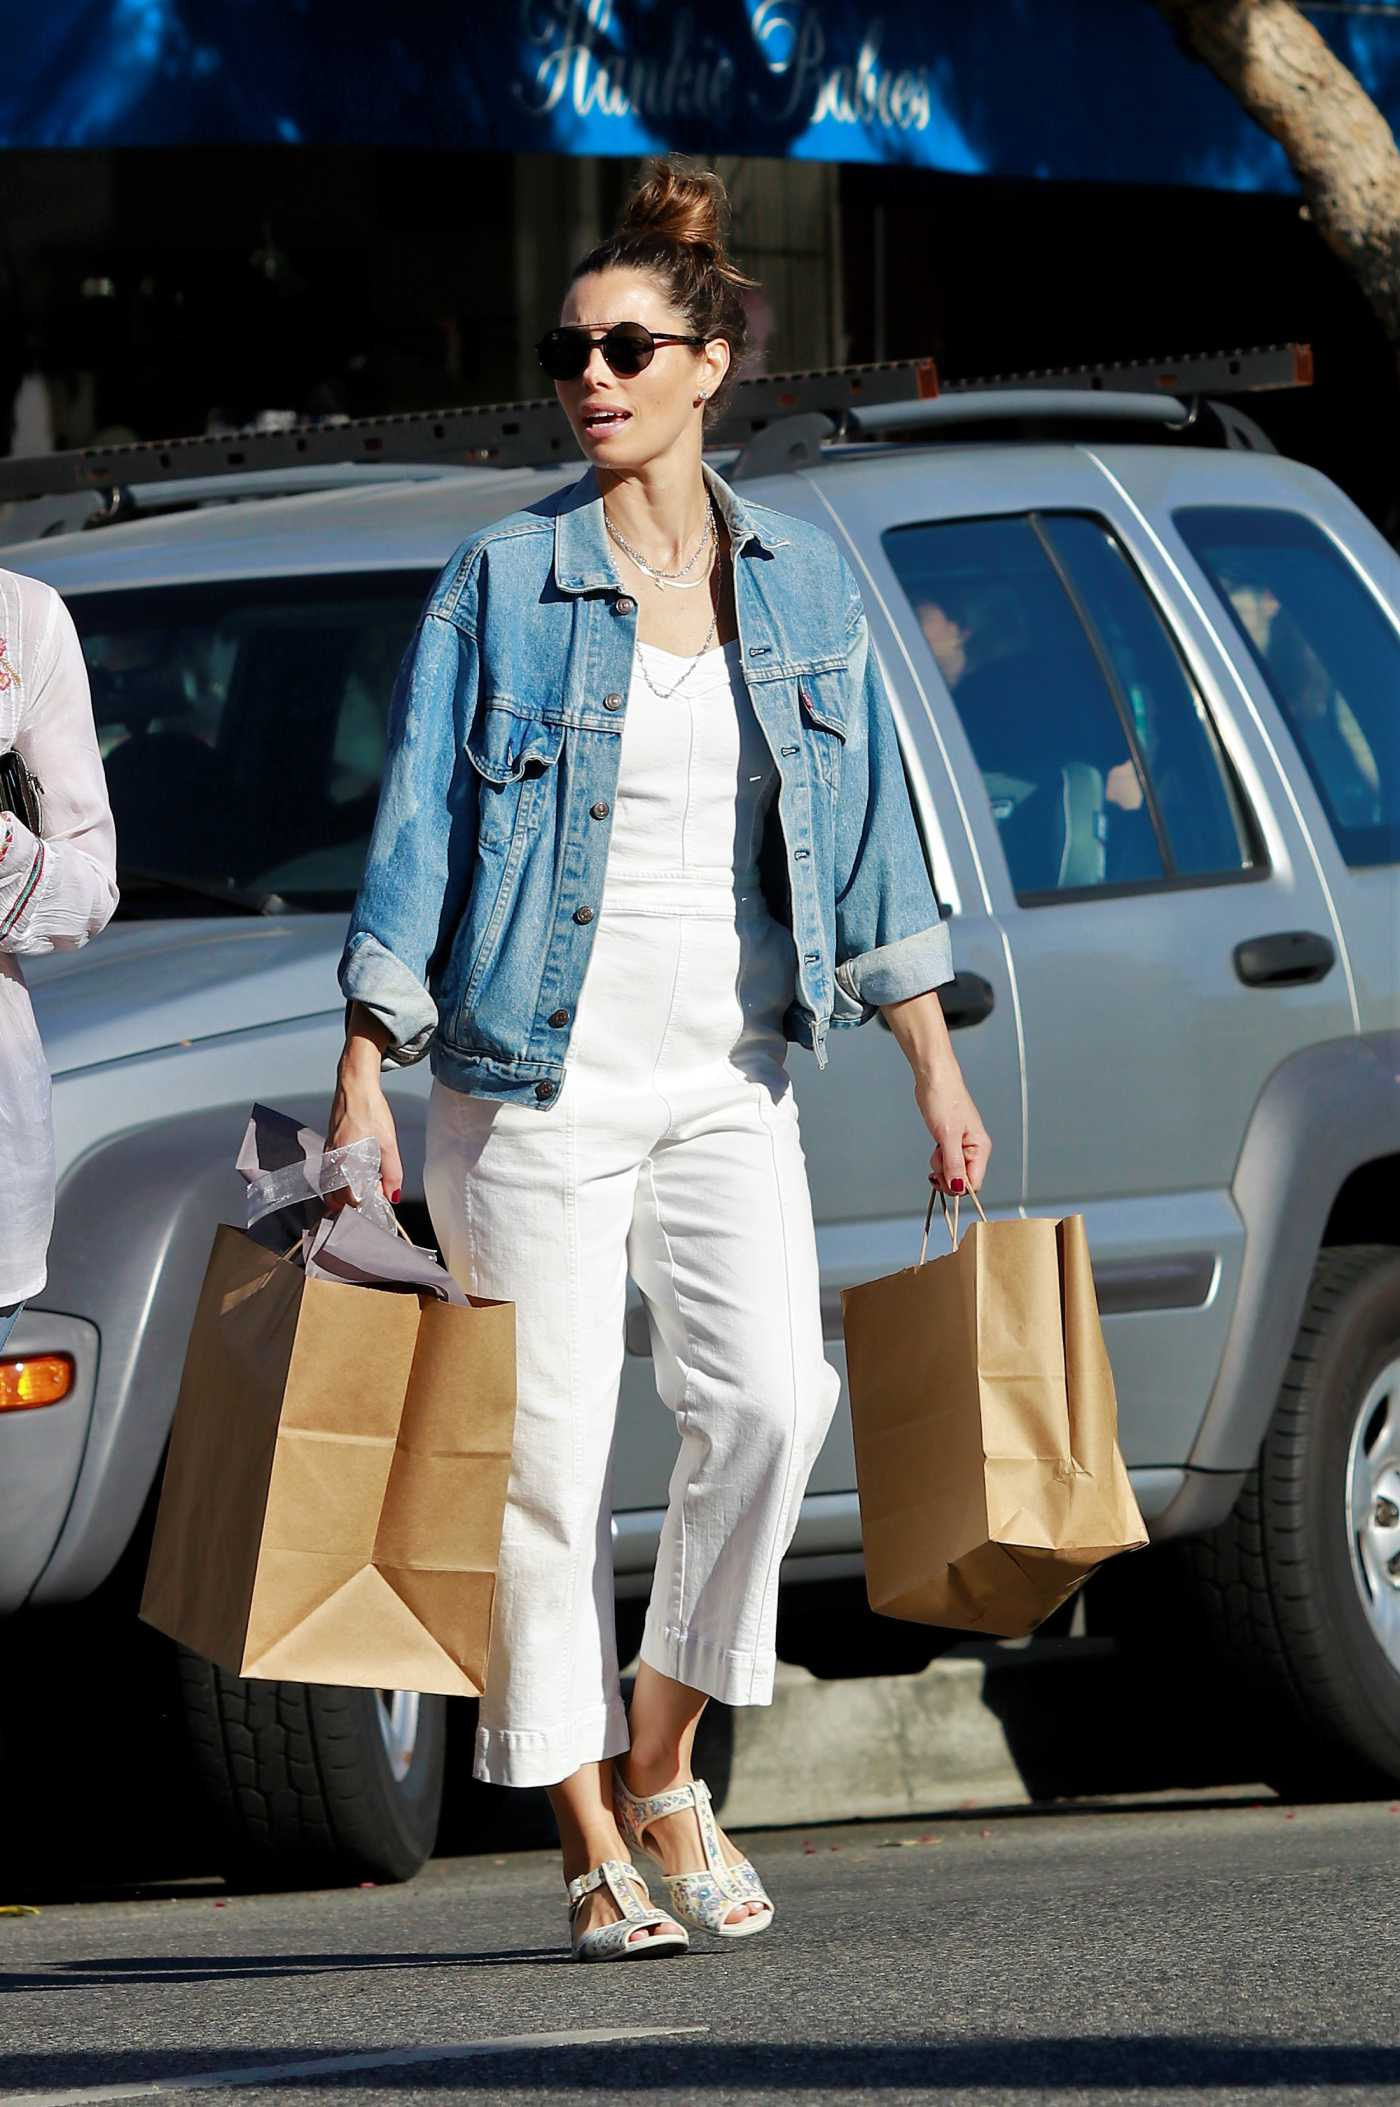 Jessica Biel in a White Jumpsuit Goes Shopping Out with Her Mom in Los Angeles 10/26/2019